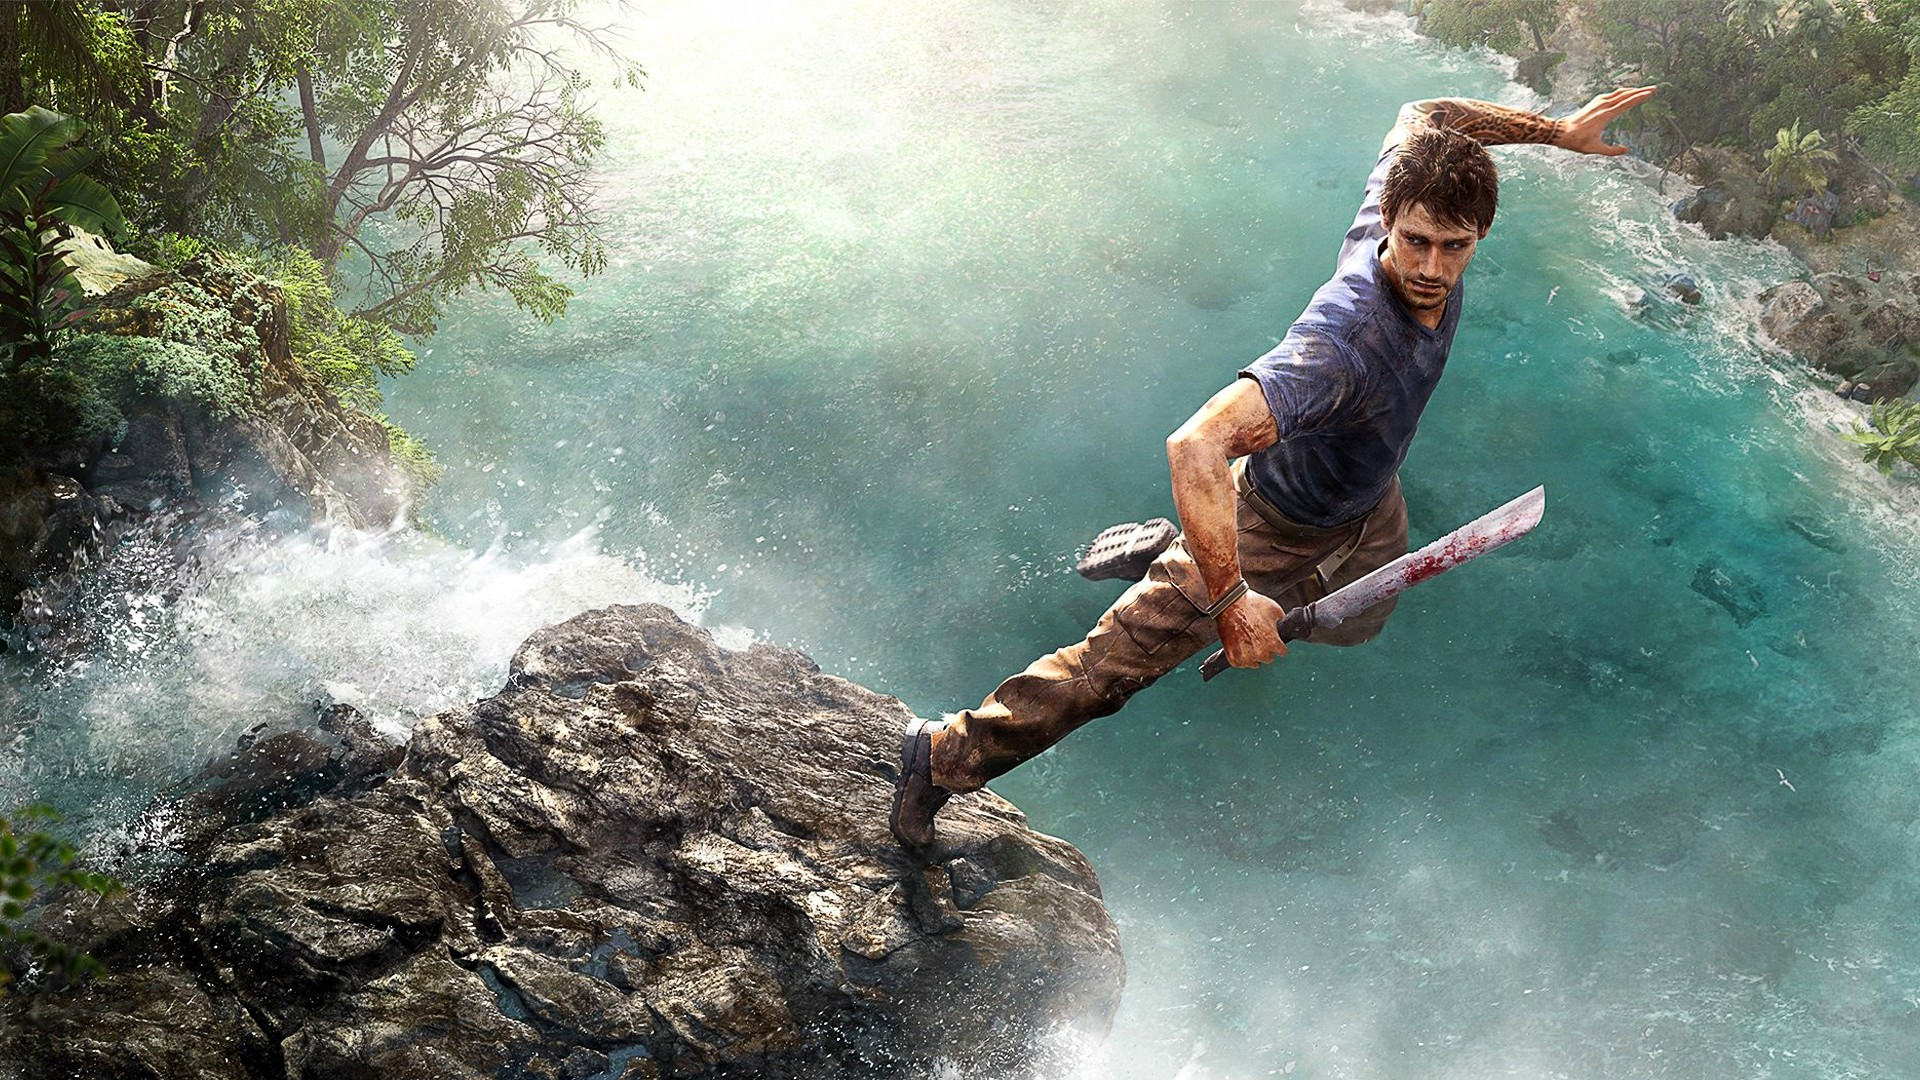 far cry 3 images far cry 3 jason 2 hd wallpaper and